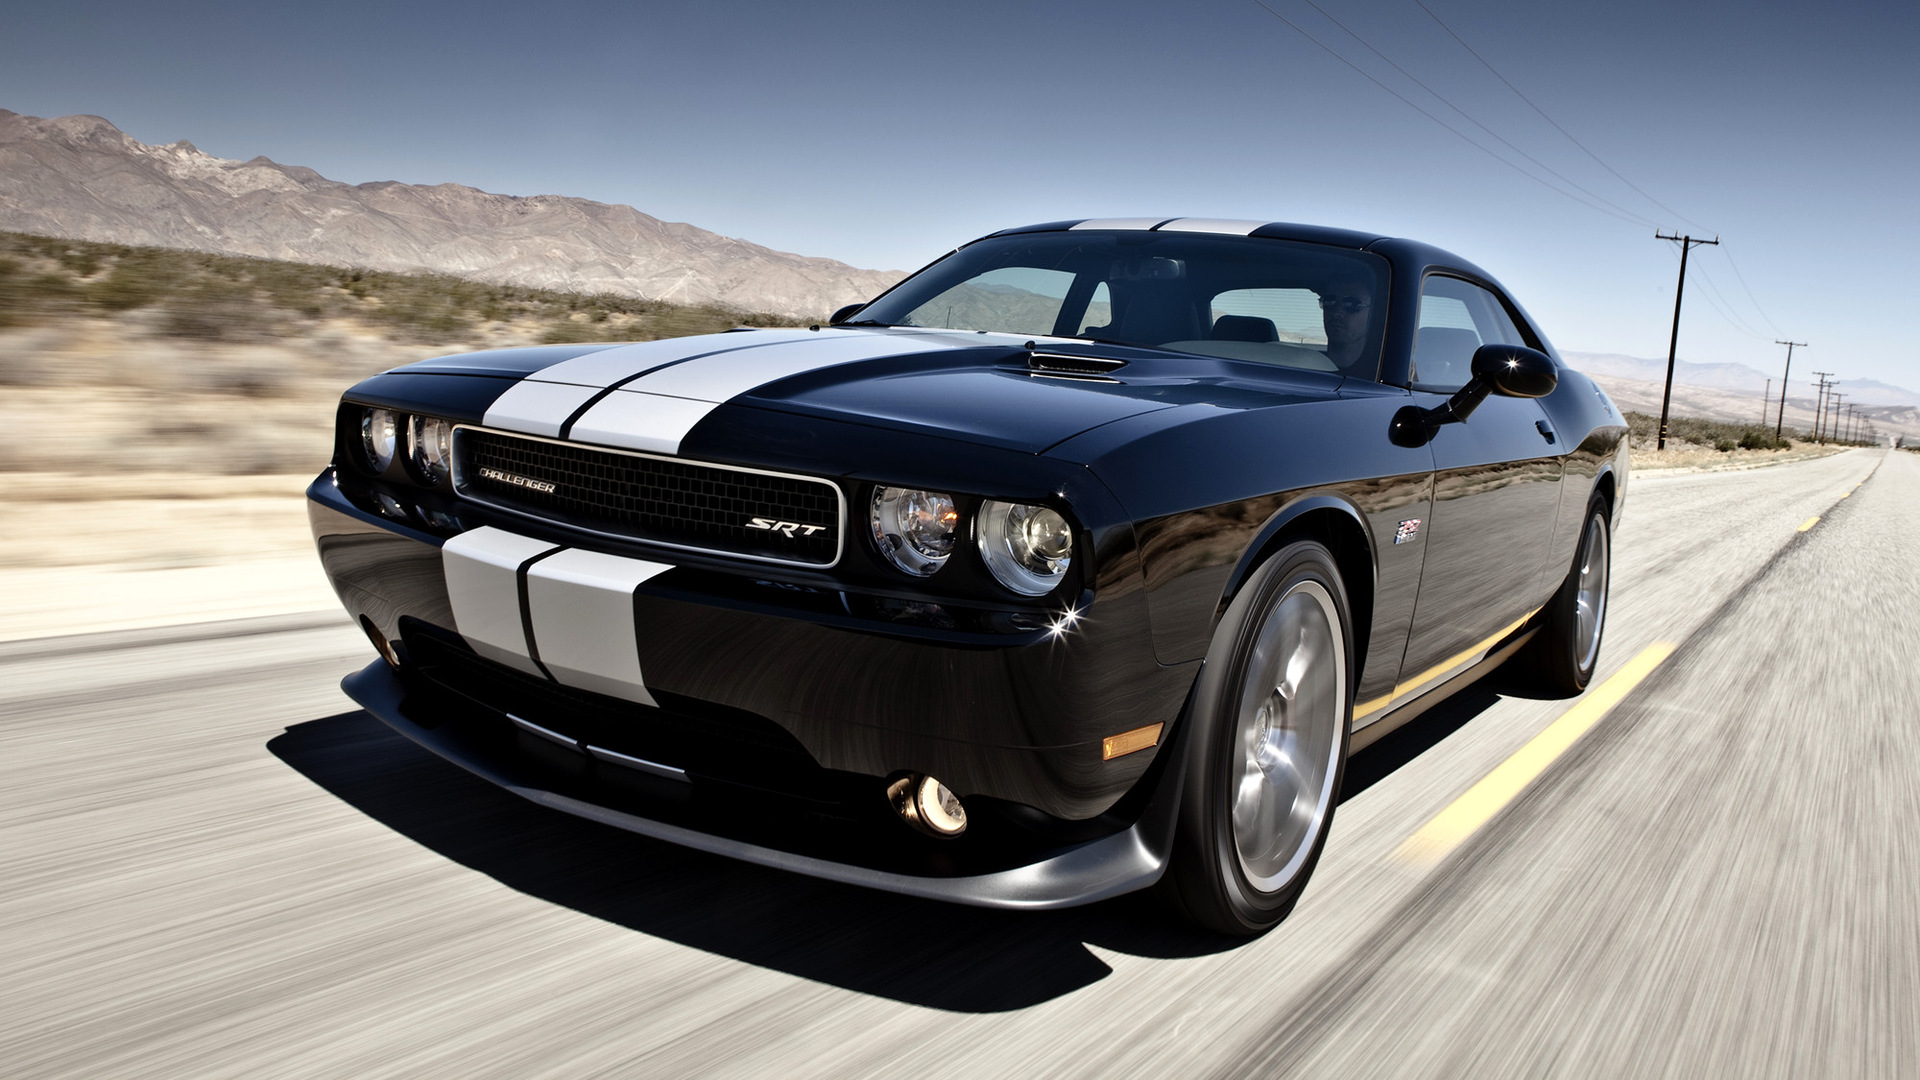 Dodge Challenger SRT8 392 2011 Wallpapers and HD Images 1920x1080